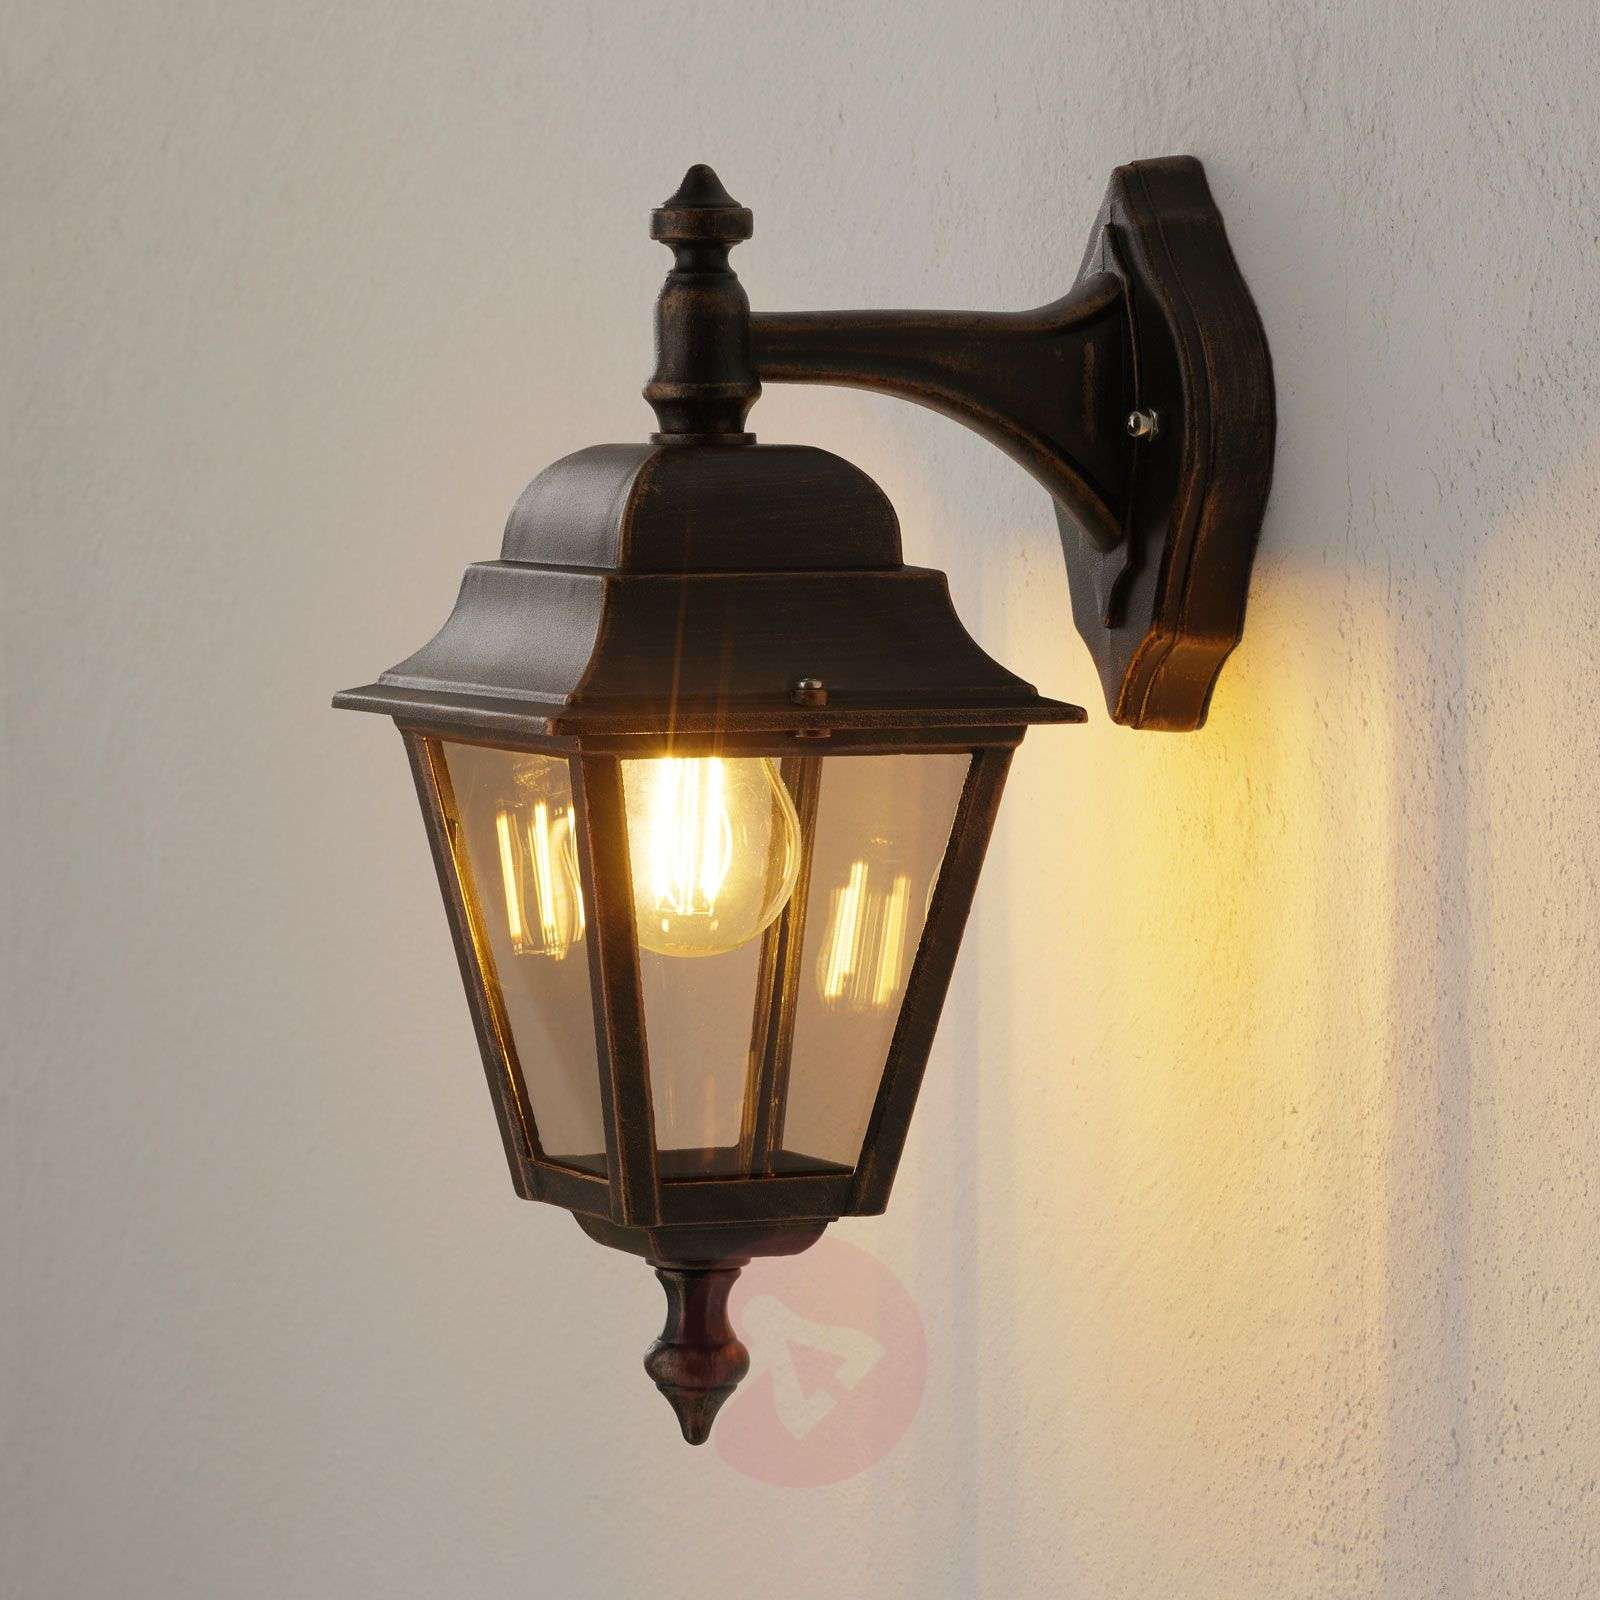 Copper outdoor wall light Toulouse, hanging-6068036-01